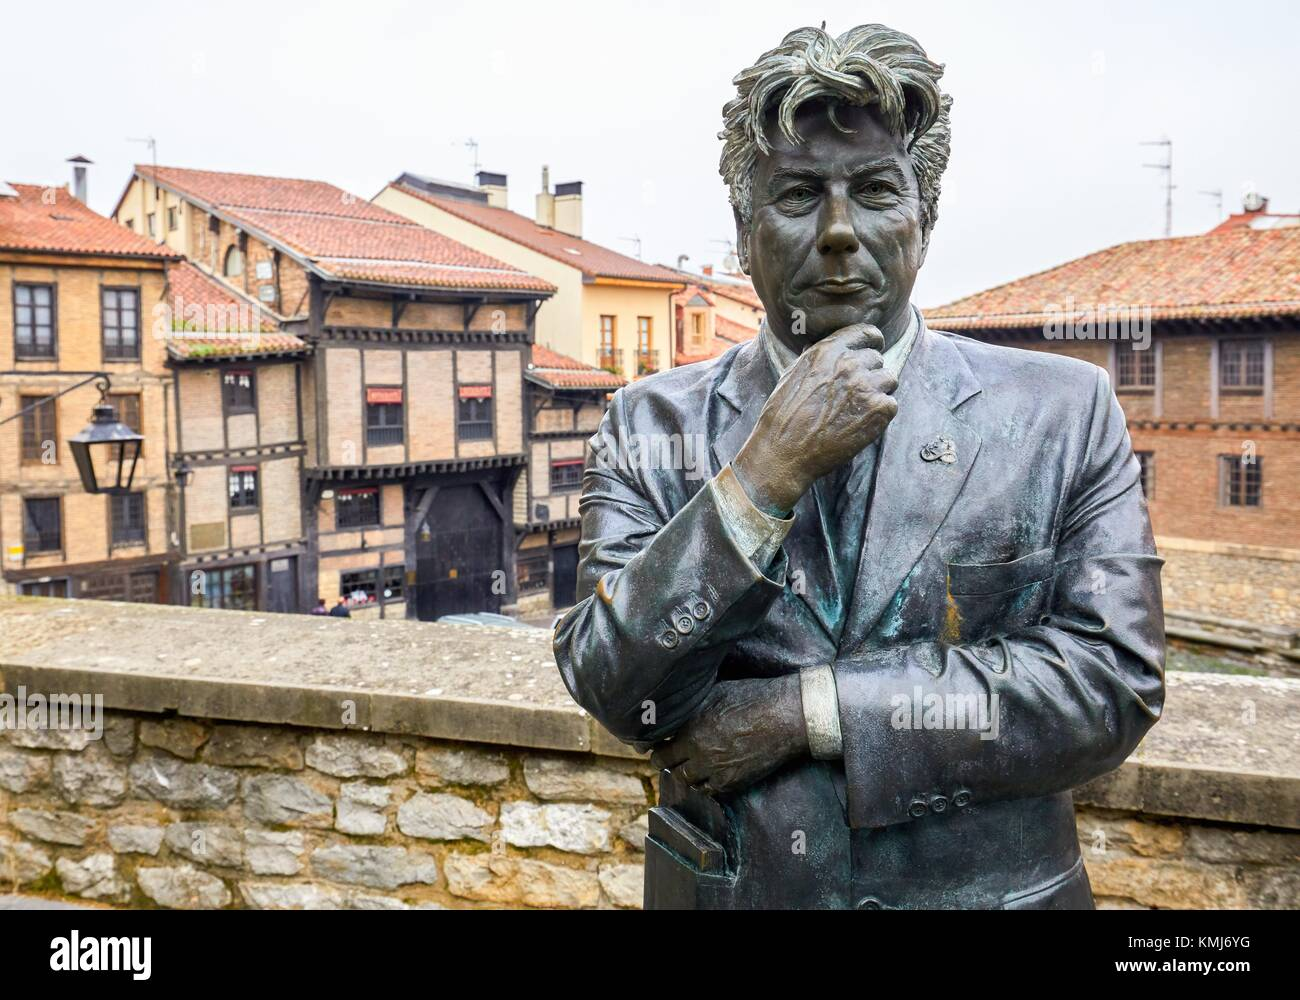 Ken Follet Statue looking at the Cathedral of Santa Maria. Vitoria-Gasteiz, çlava, Basque Country, Spain, Europe - Stock Image